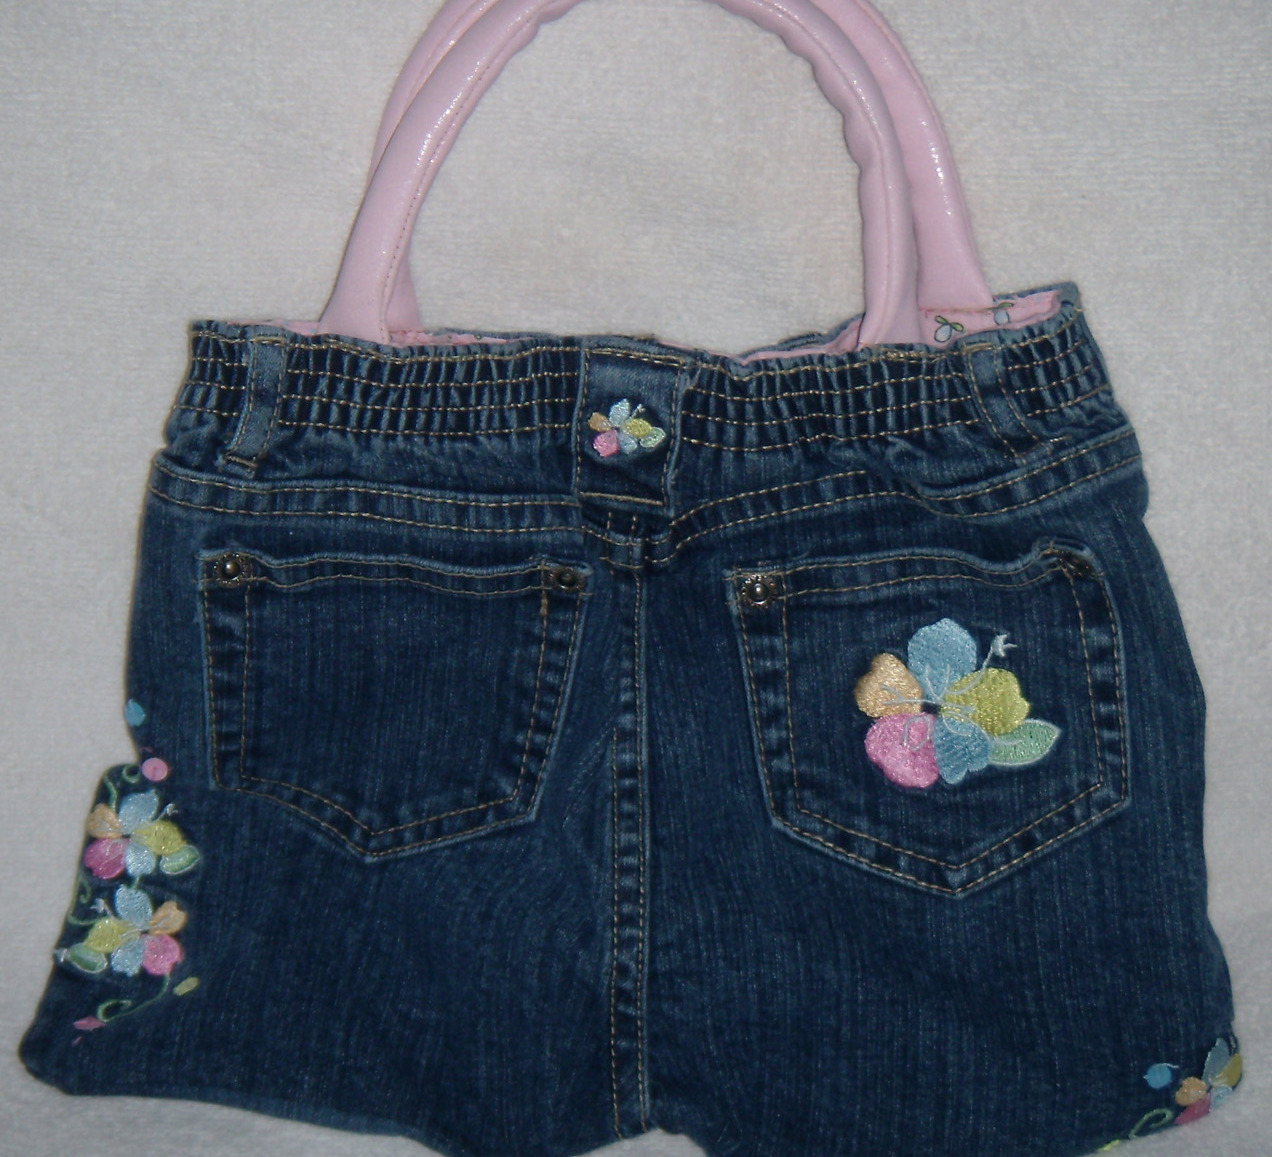 Girls Recycled Embroidered Jeans Purse